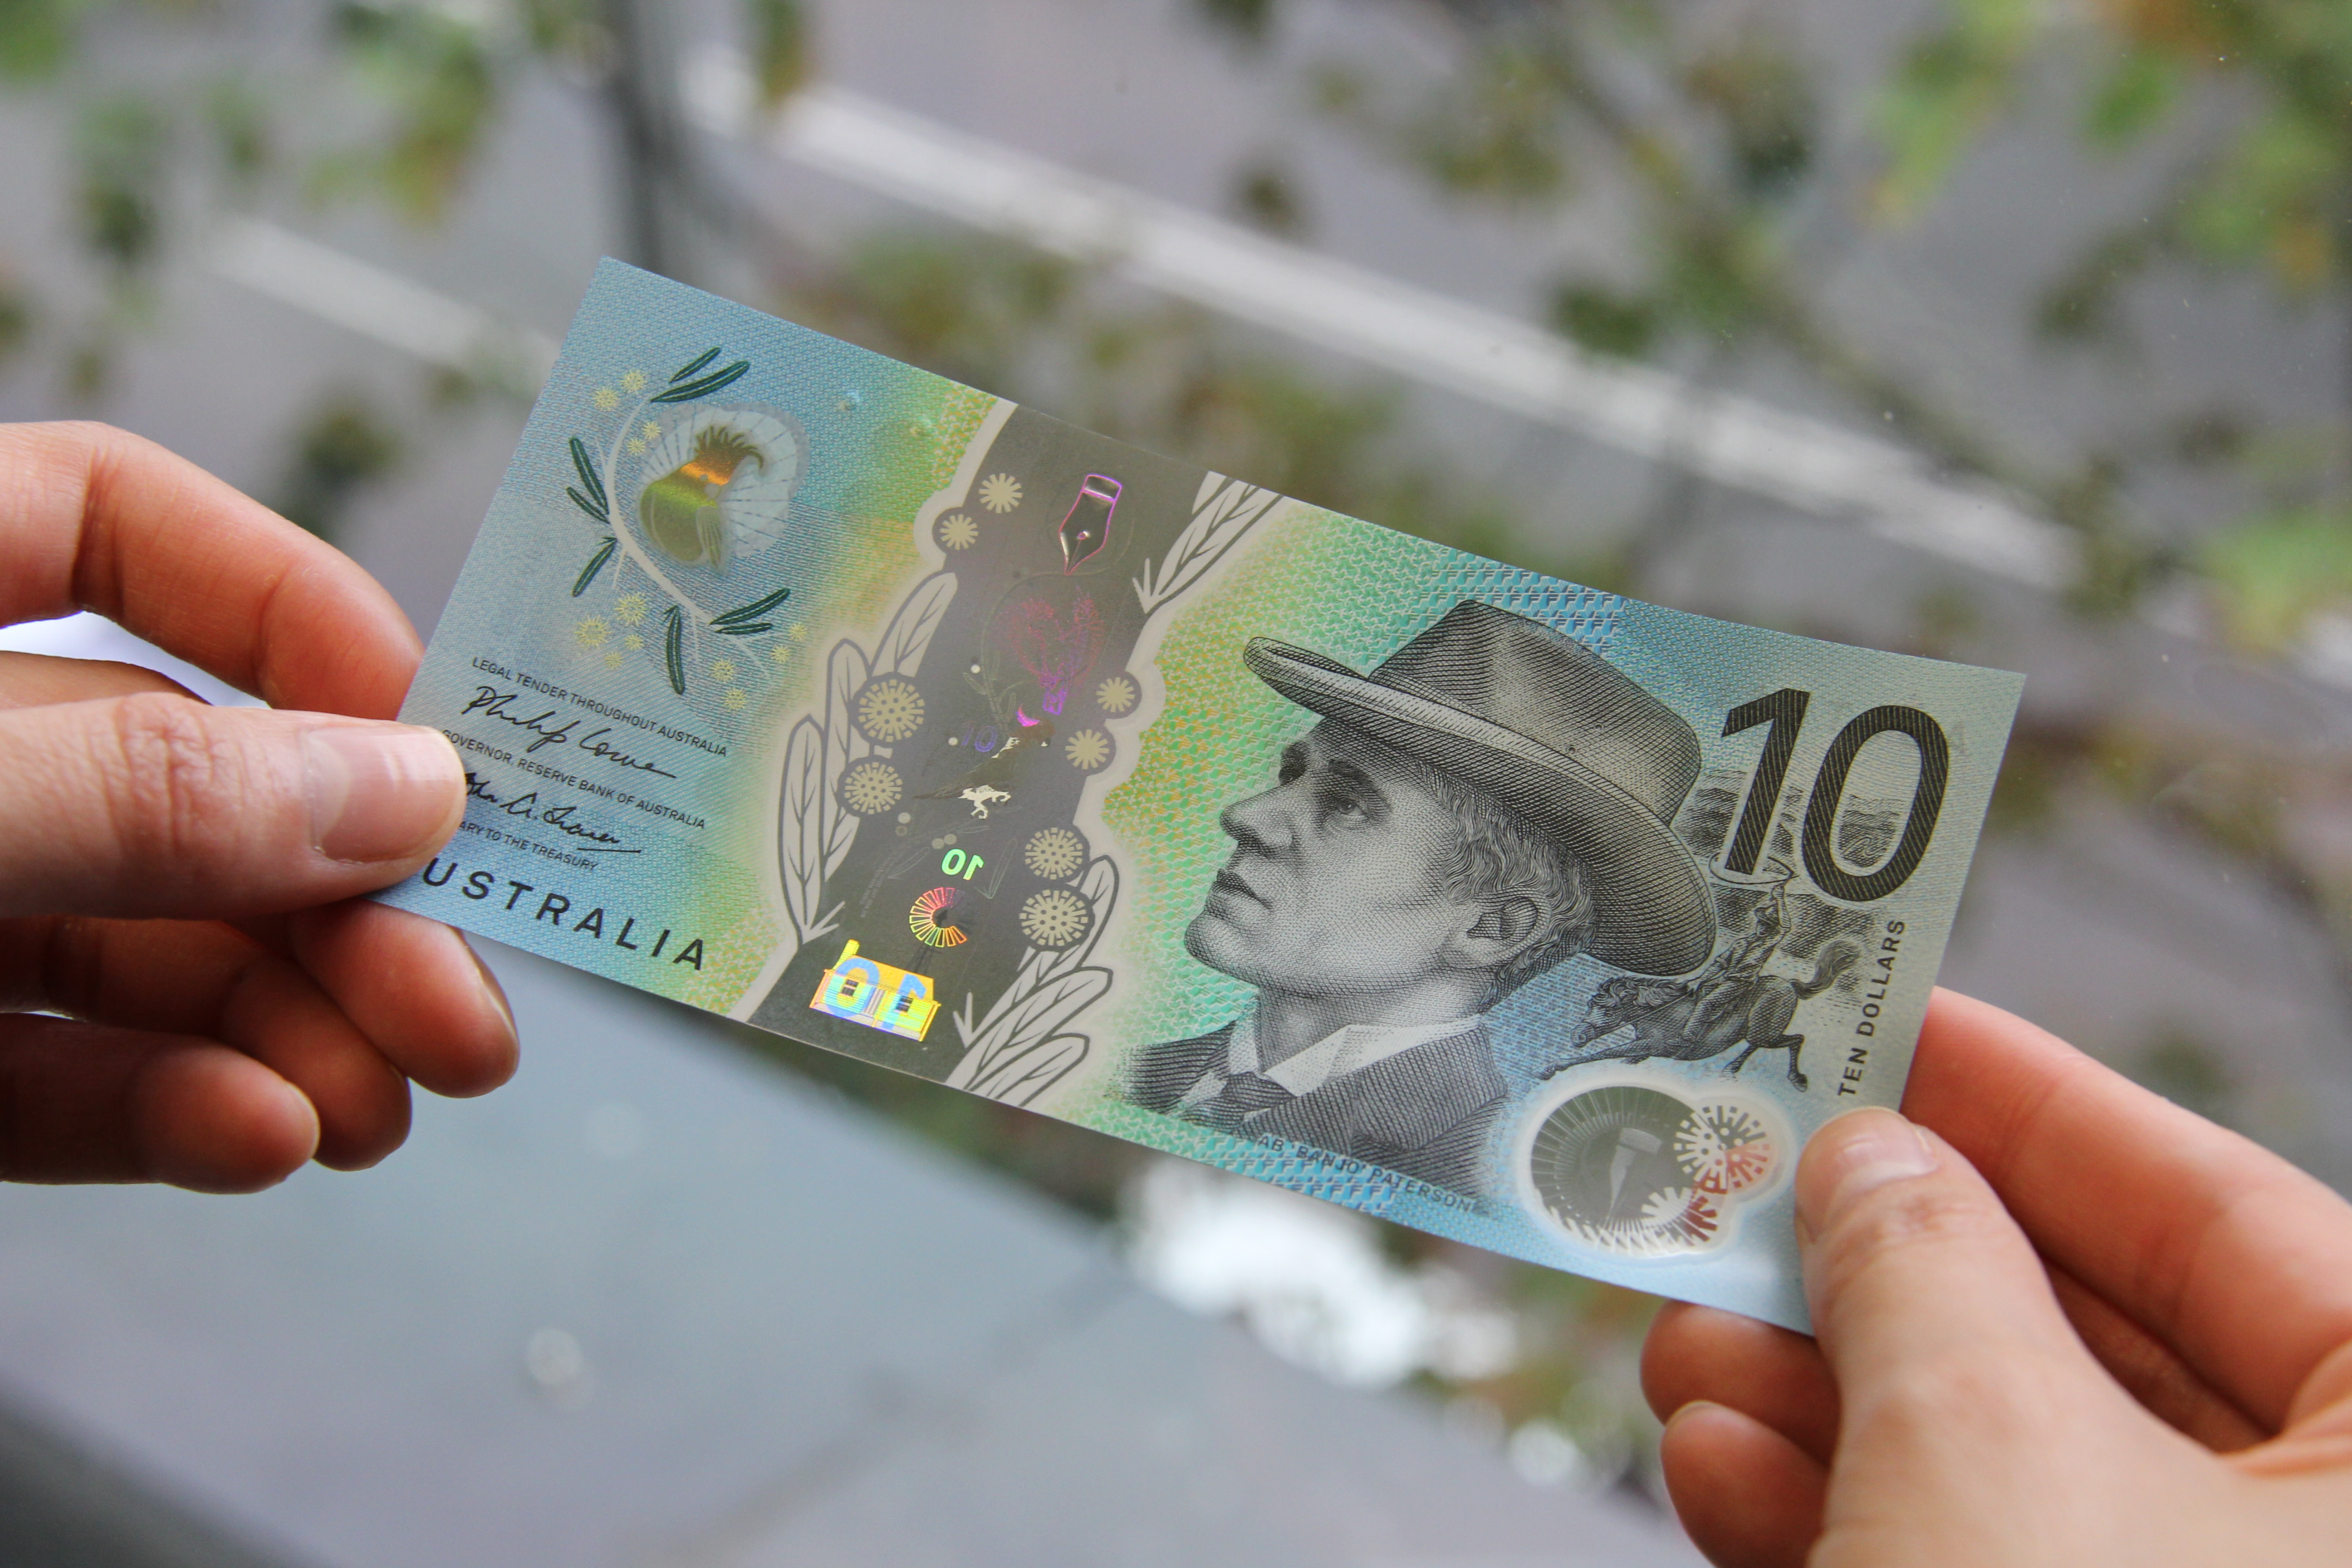 The new, revamped $10 note has been released